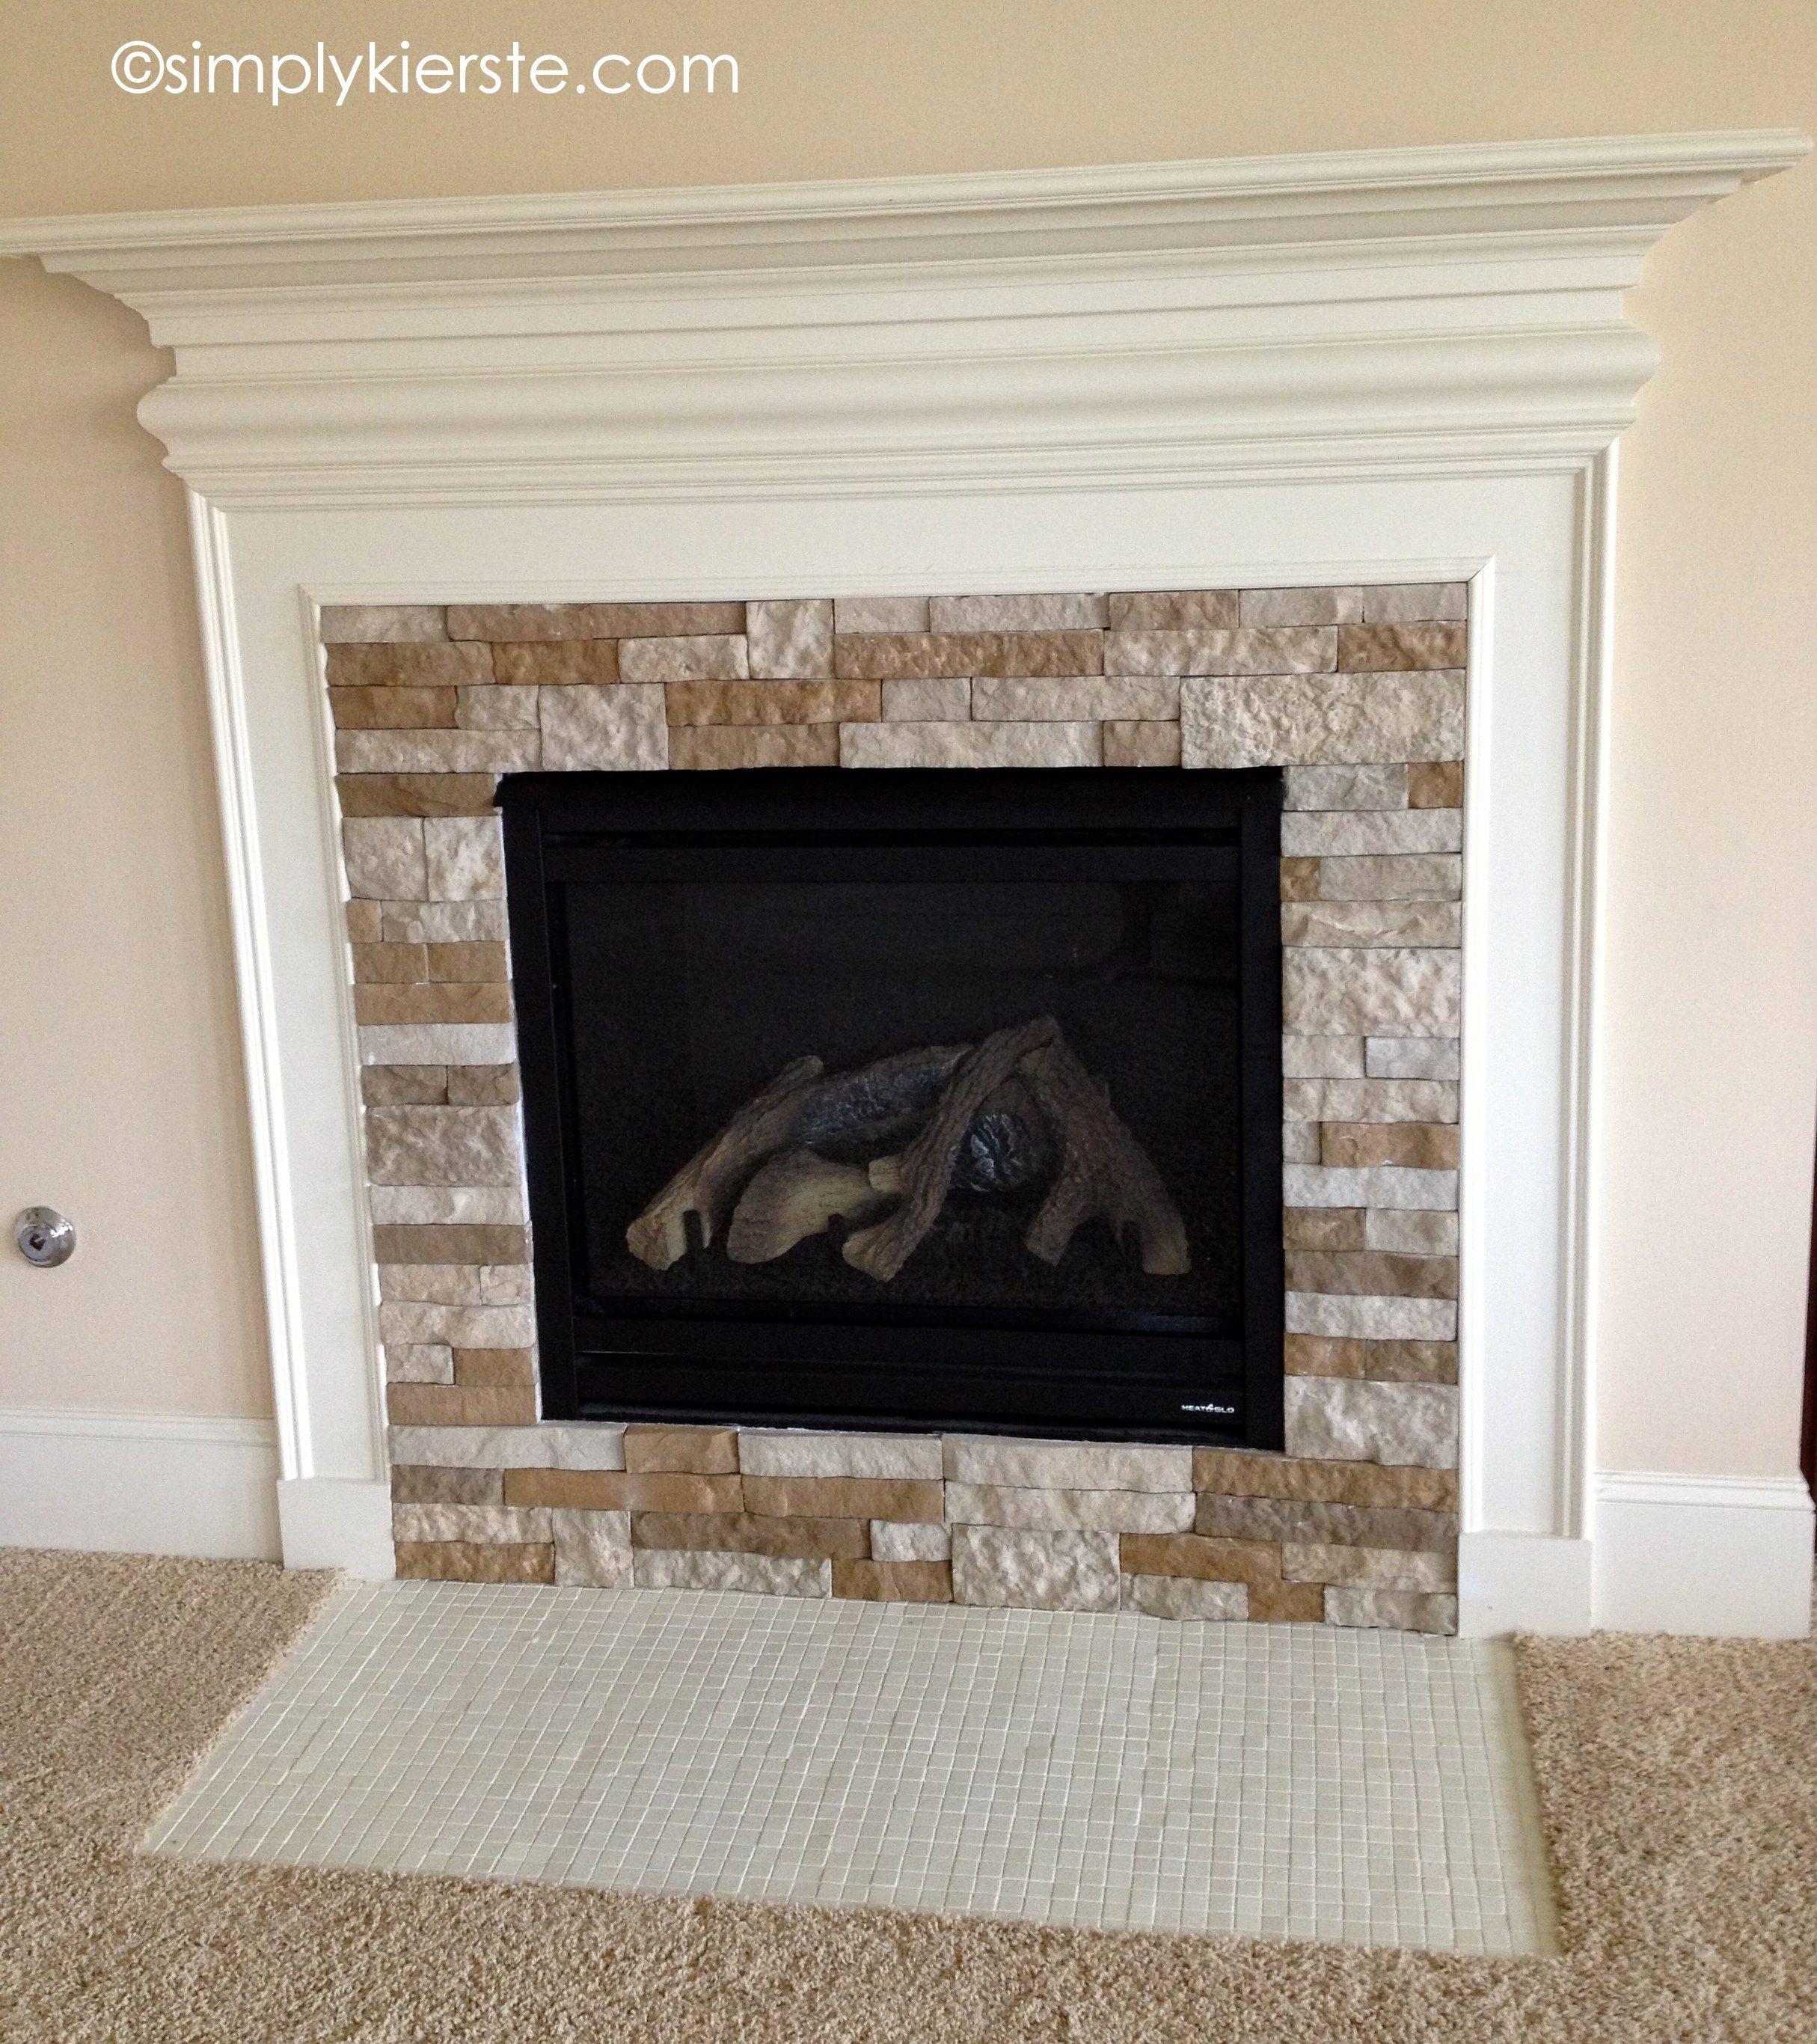 Fireplace Makeover: Fireplace Makeover Using Airstone